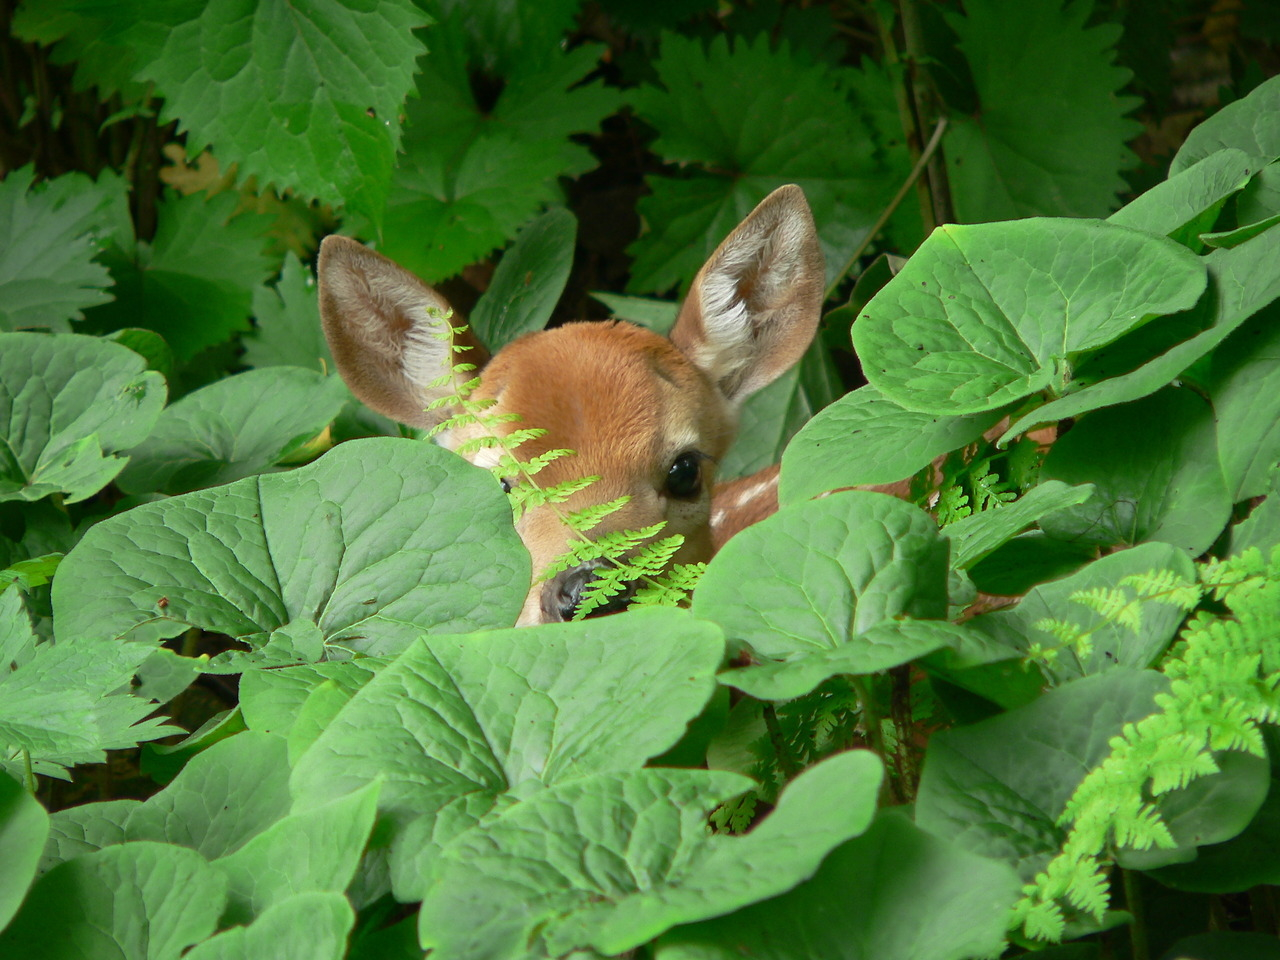 Peeking Deer Pictures, Photos, and Images for Facebook